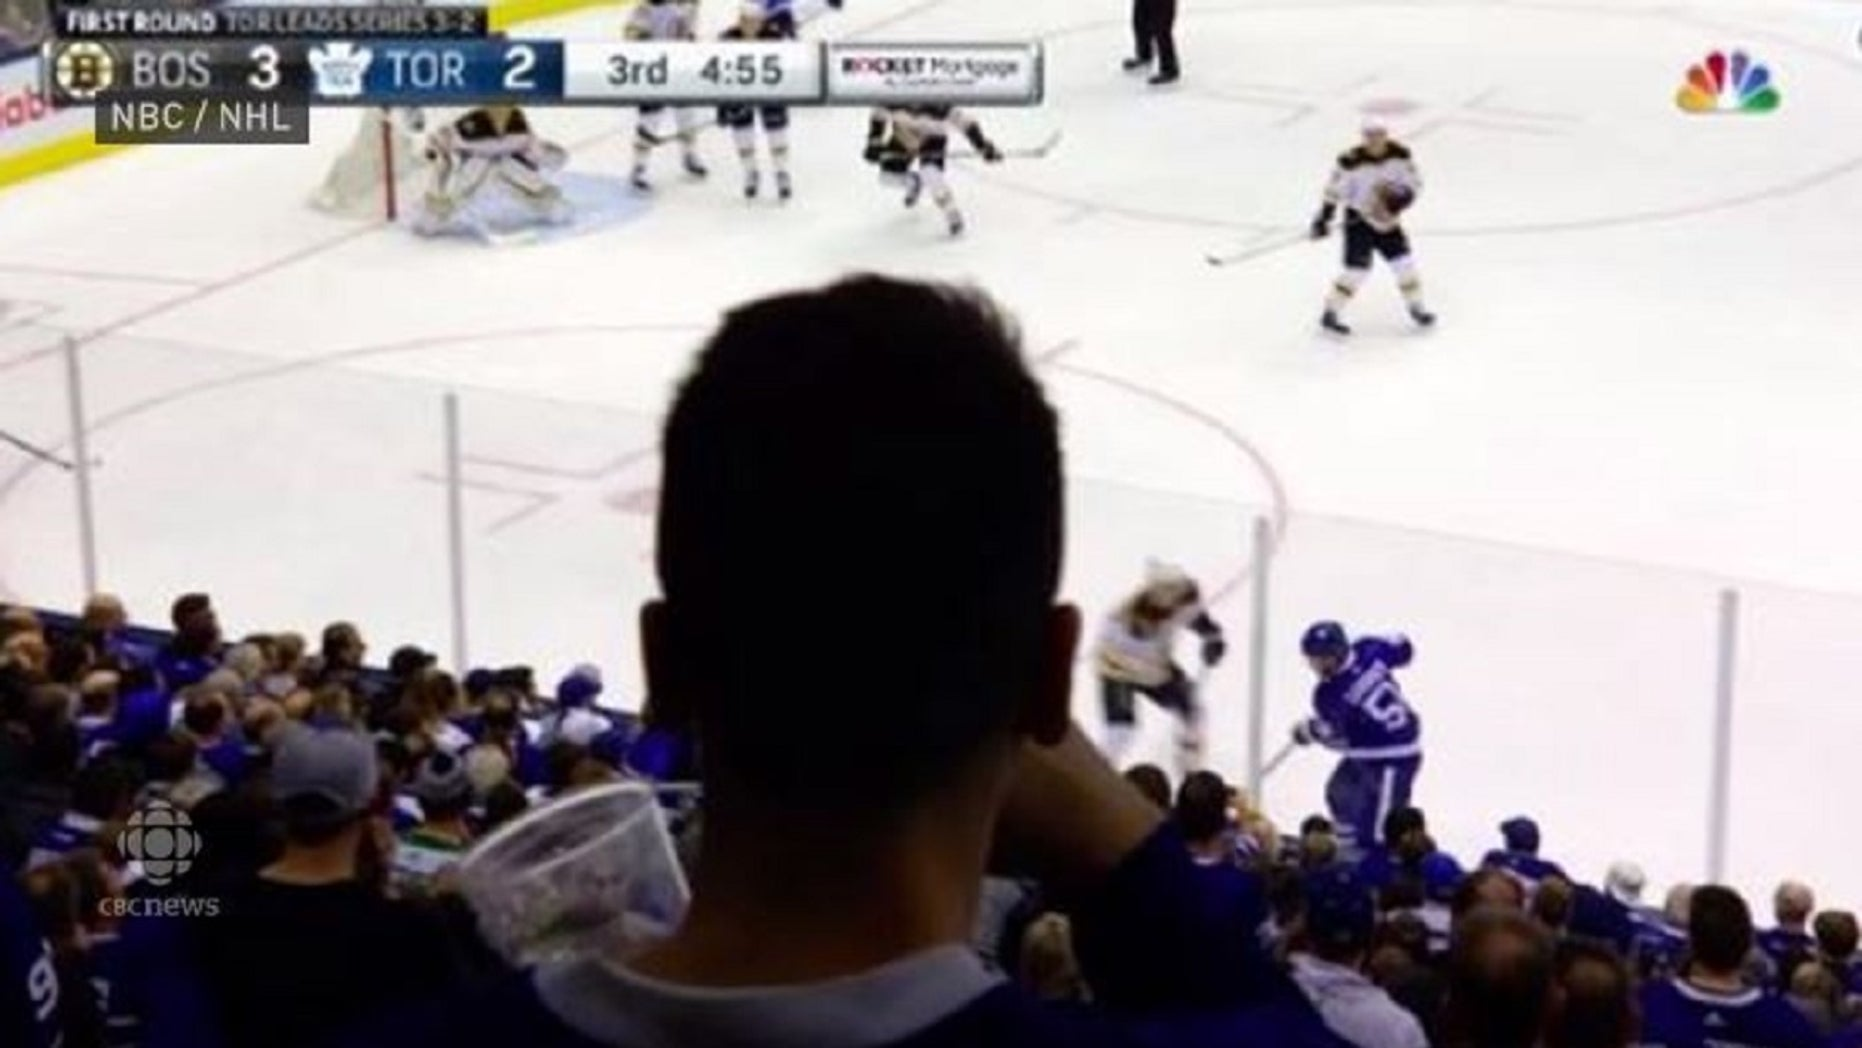 Many American television viewers were upset with a fan who partially blocked a camera's view during an April 21 game between the Boston Bruin and Toronto Maple Leafs.